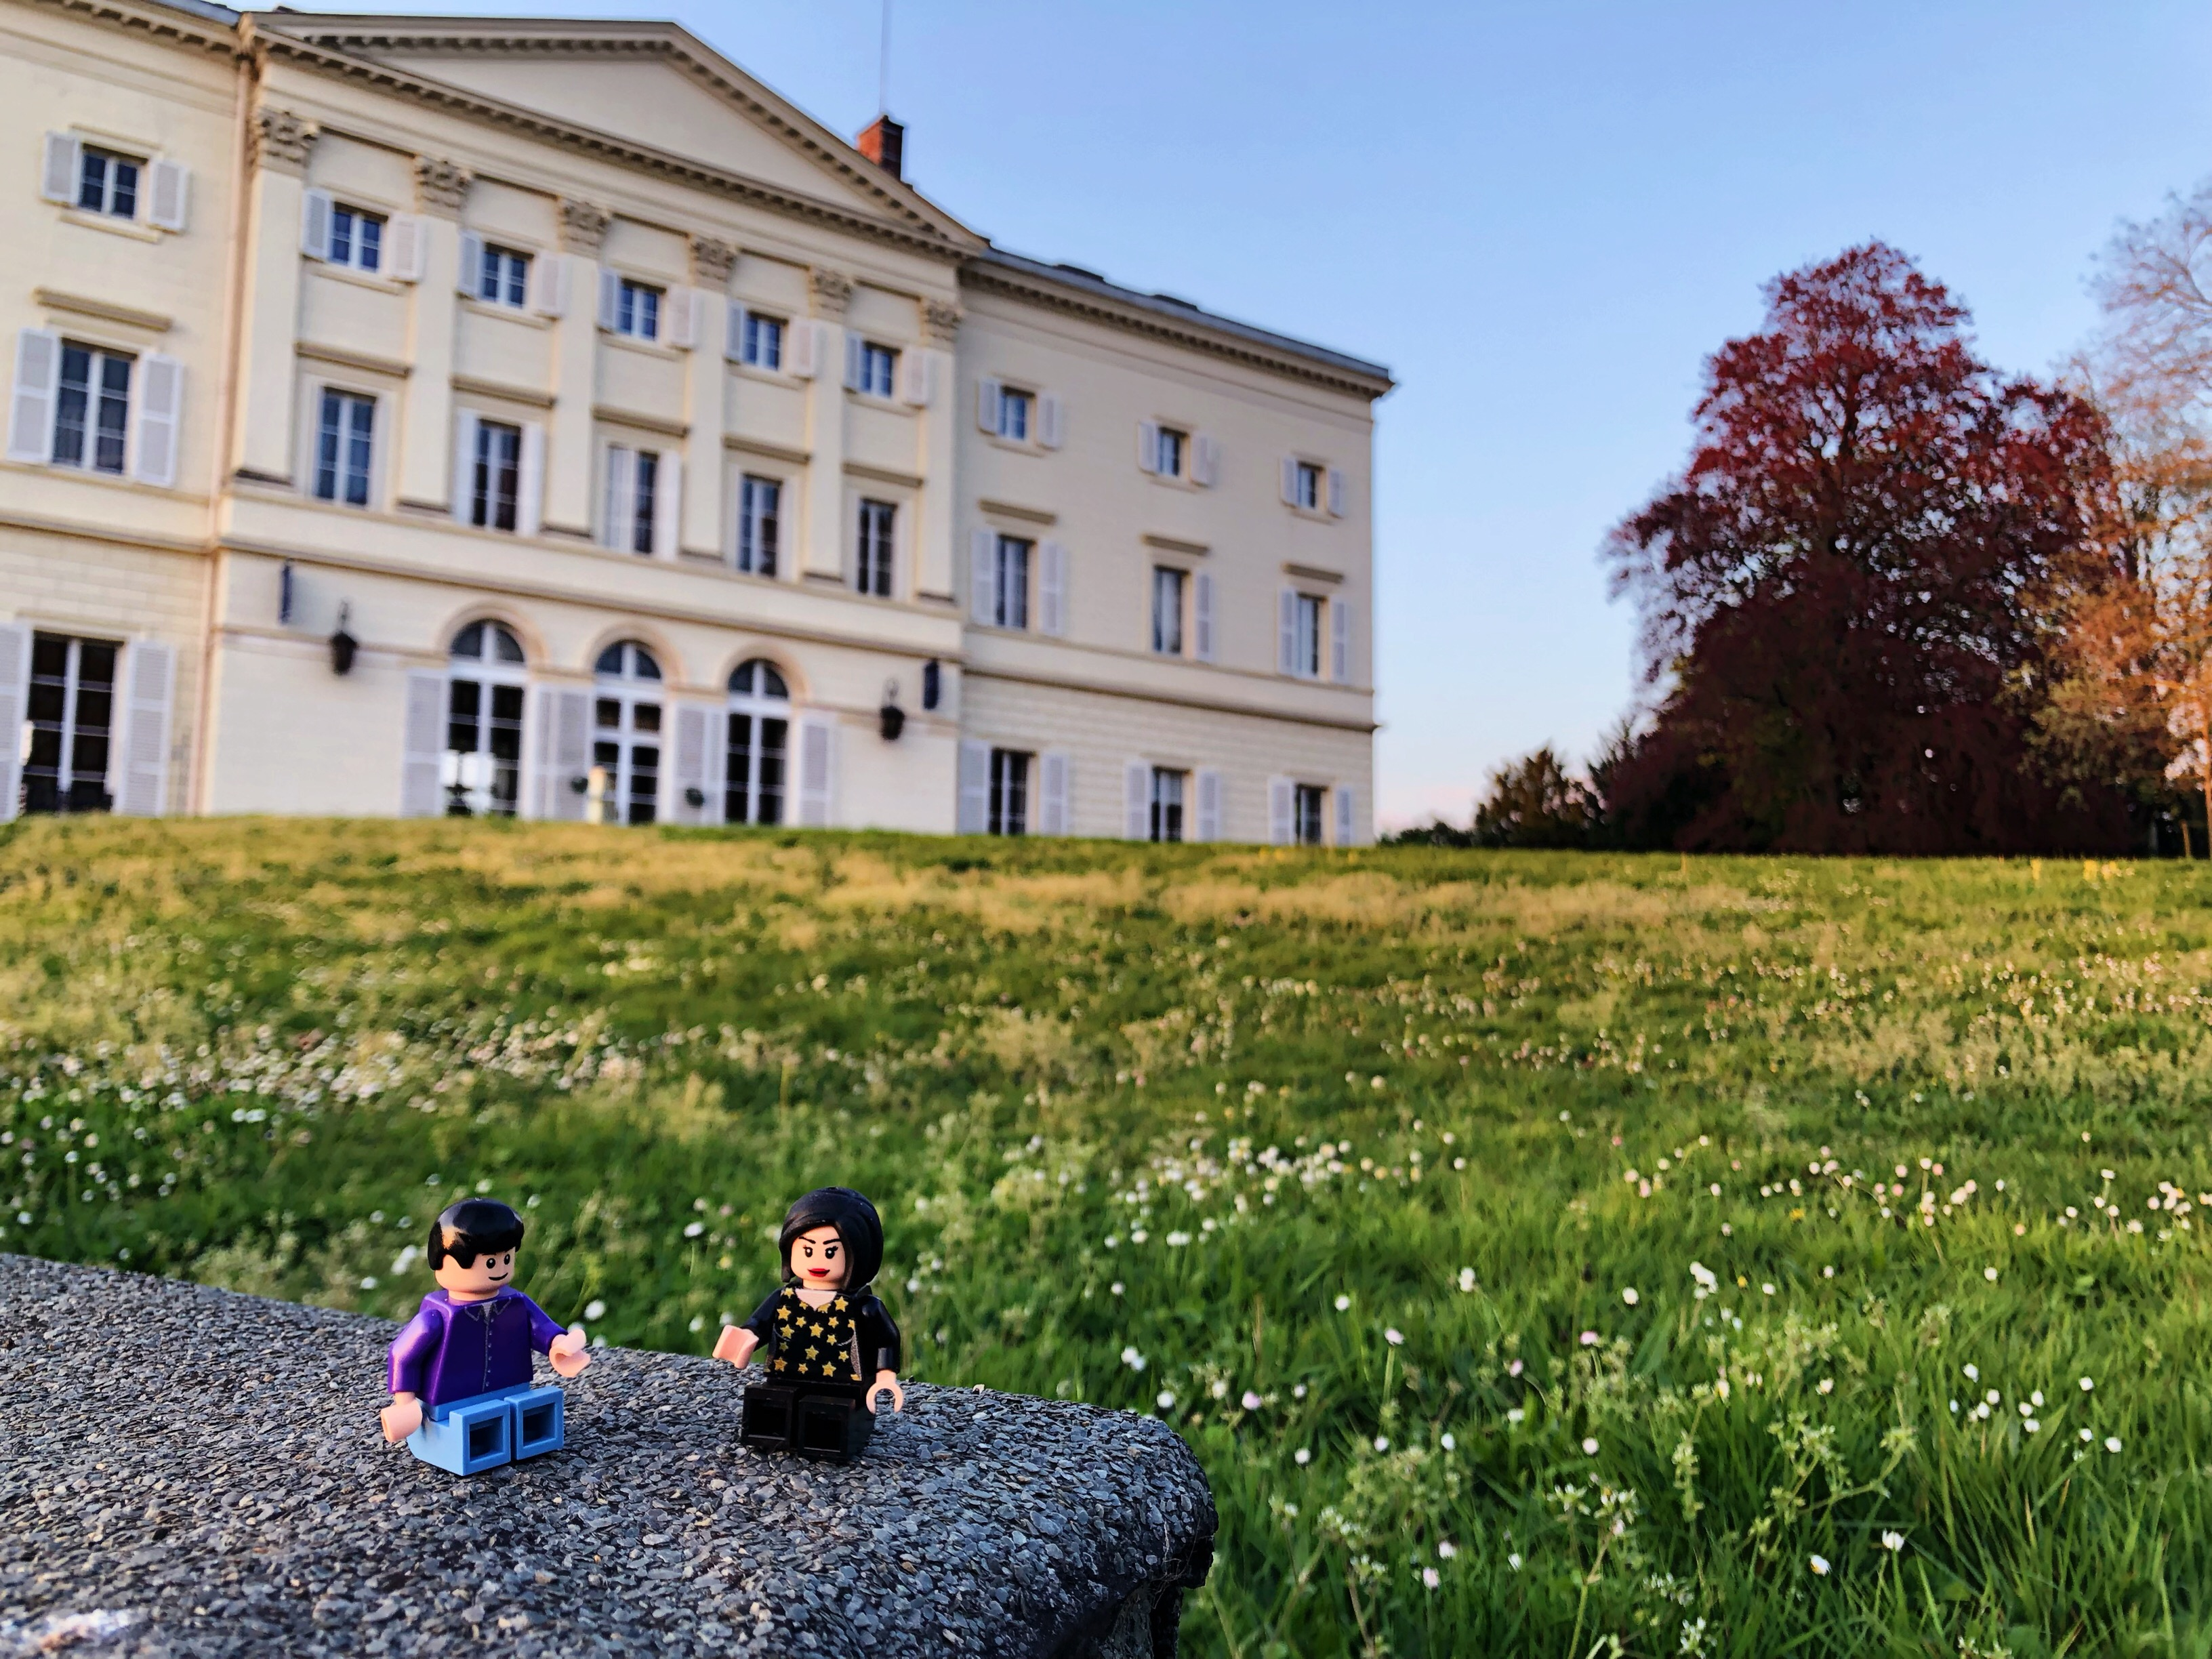 A lego man and woman sat together on stone in the grass in front of the HEC Chateau, which features in the background along trees of varying colours